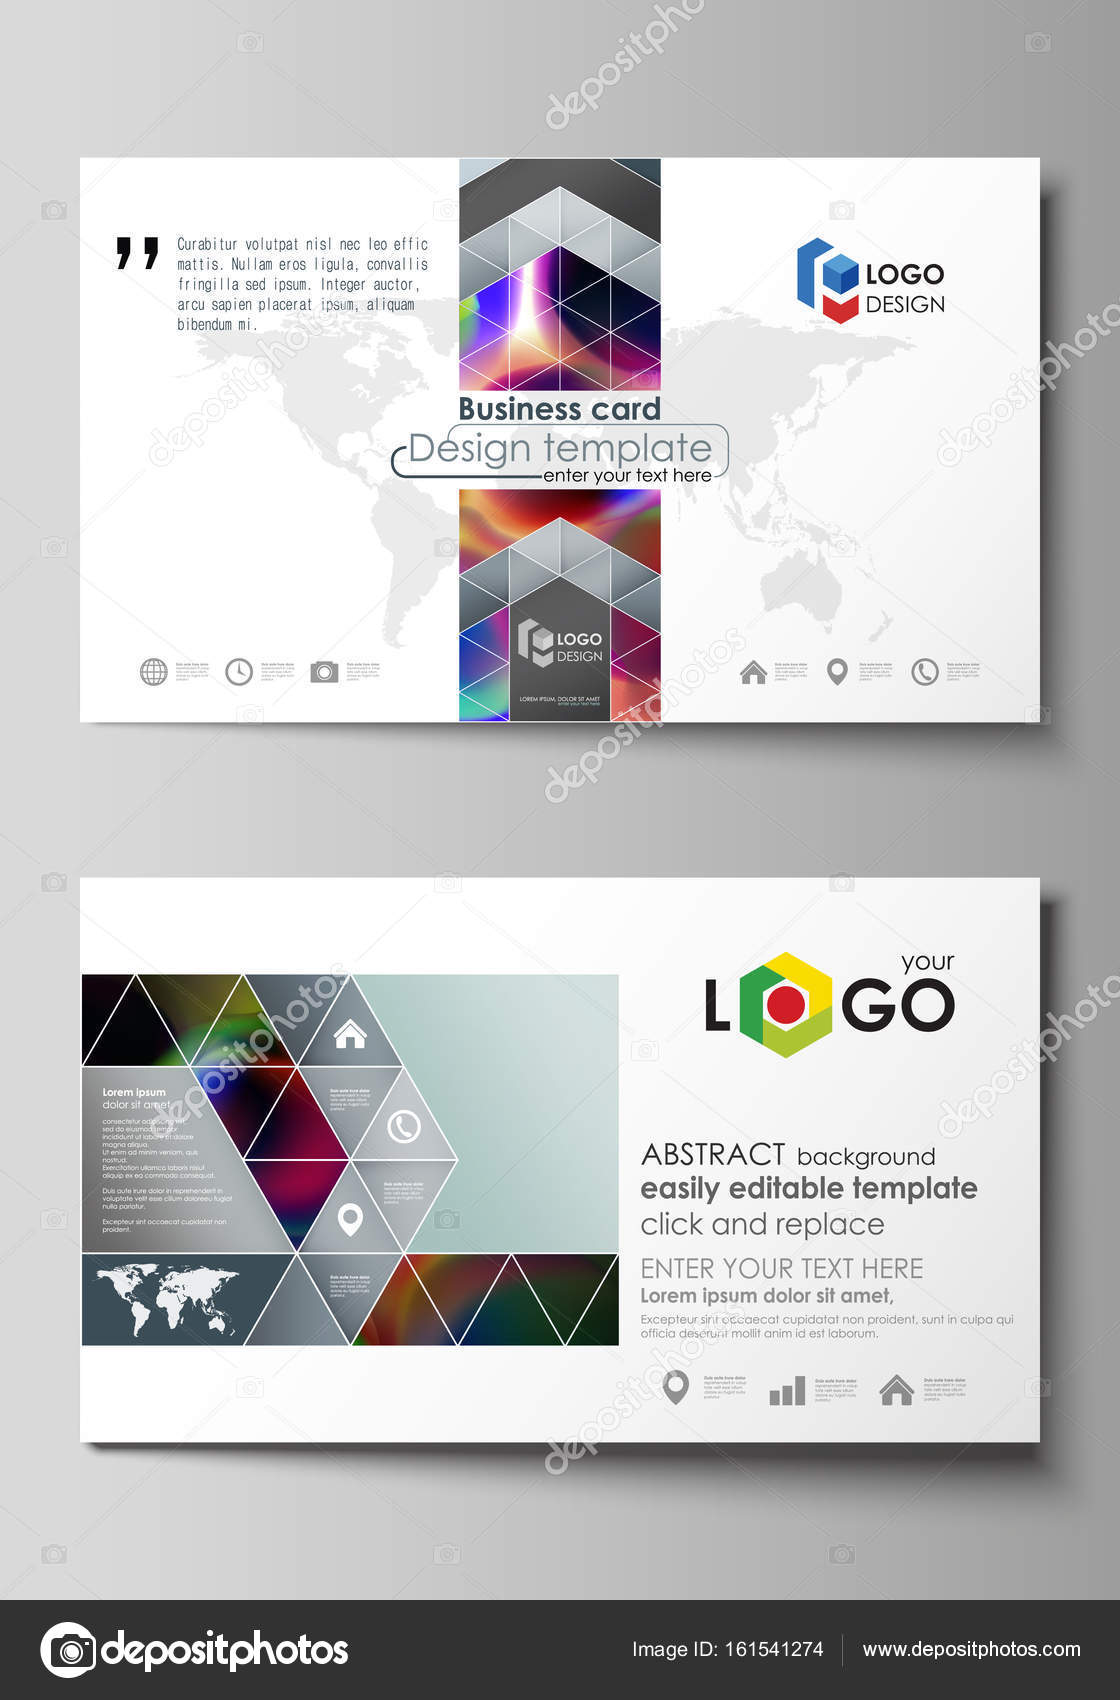 Business card templates easy editable layout flat style template business card templates easy editable layout abstract flat design template vector illustration colorful design background with abstract shapes reheart Choice Image